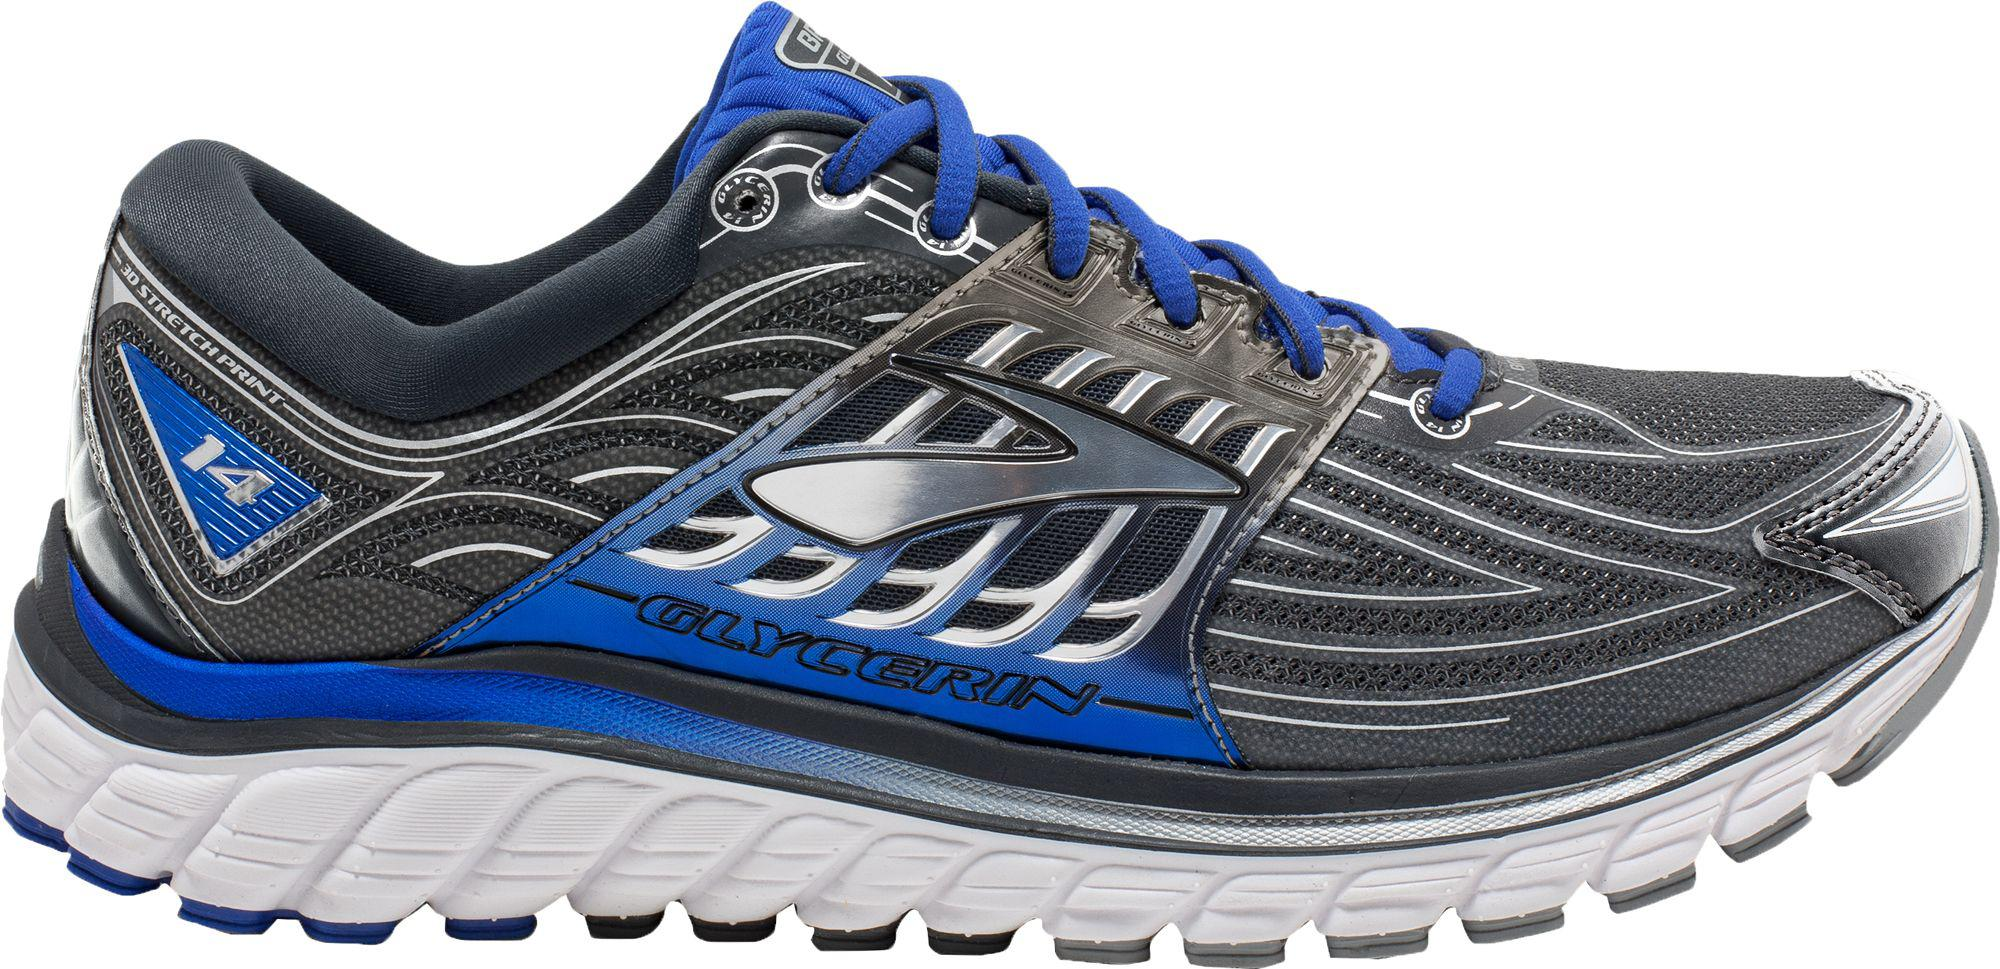 f9c853aa2a2f4 Lyst - Brooks Glycerin 14 Running Shoes in Gray for Men